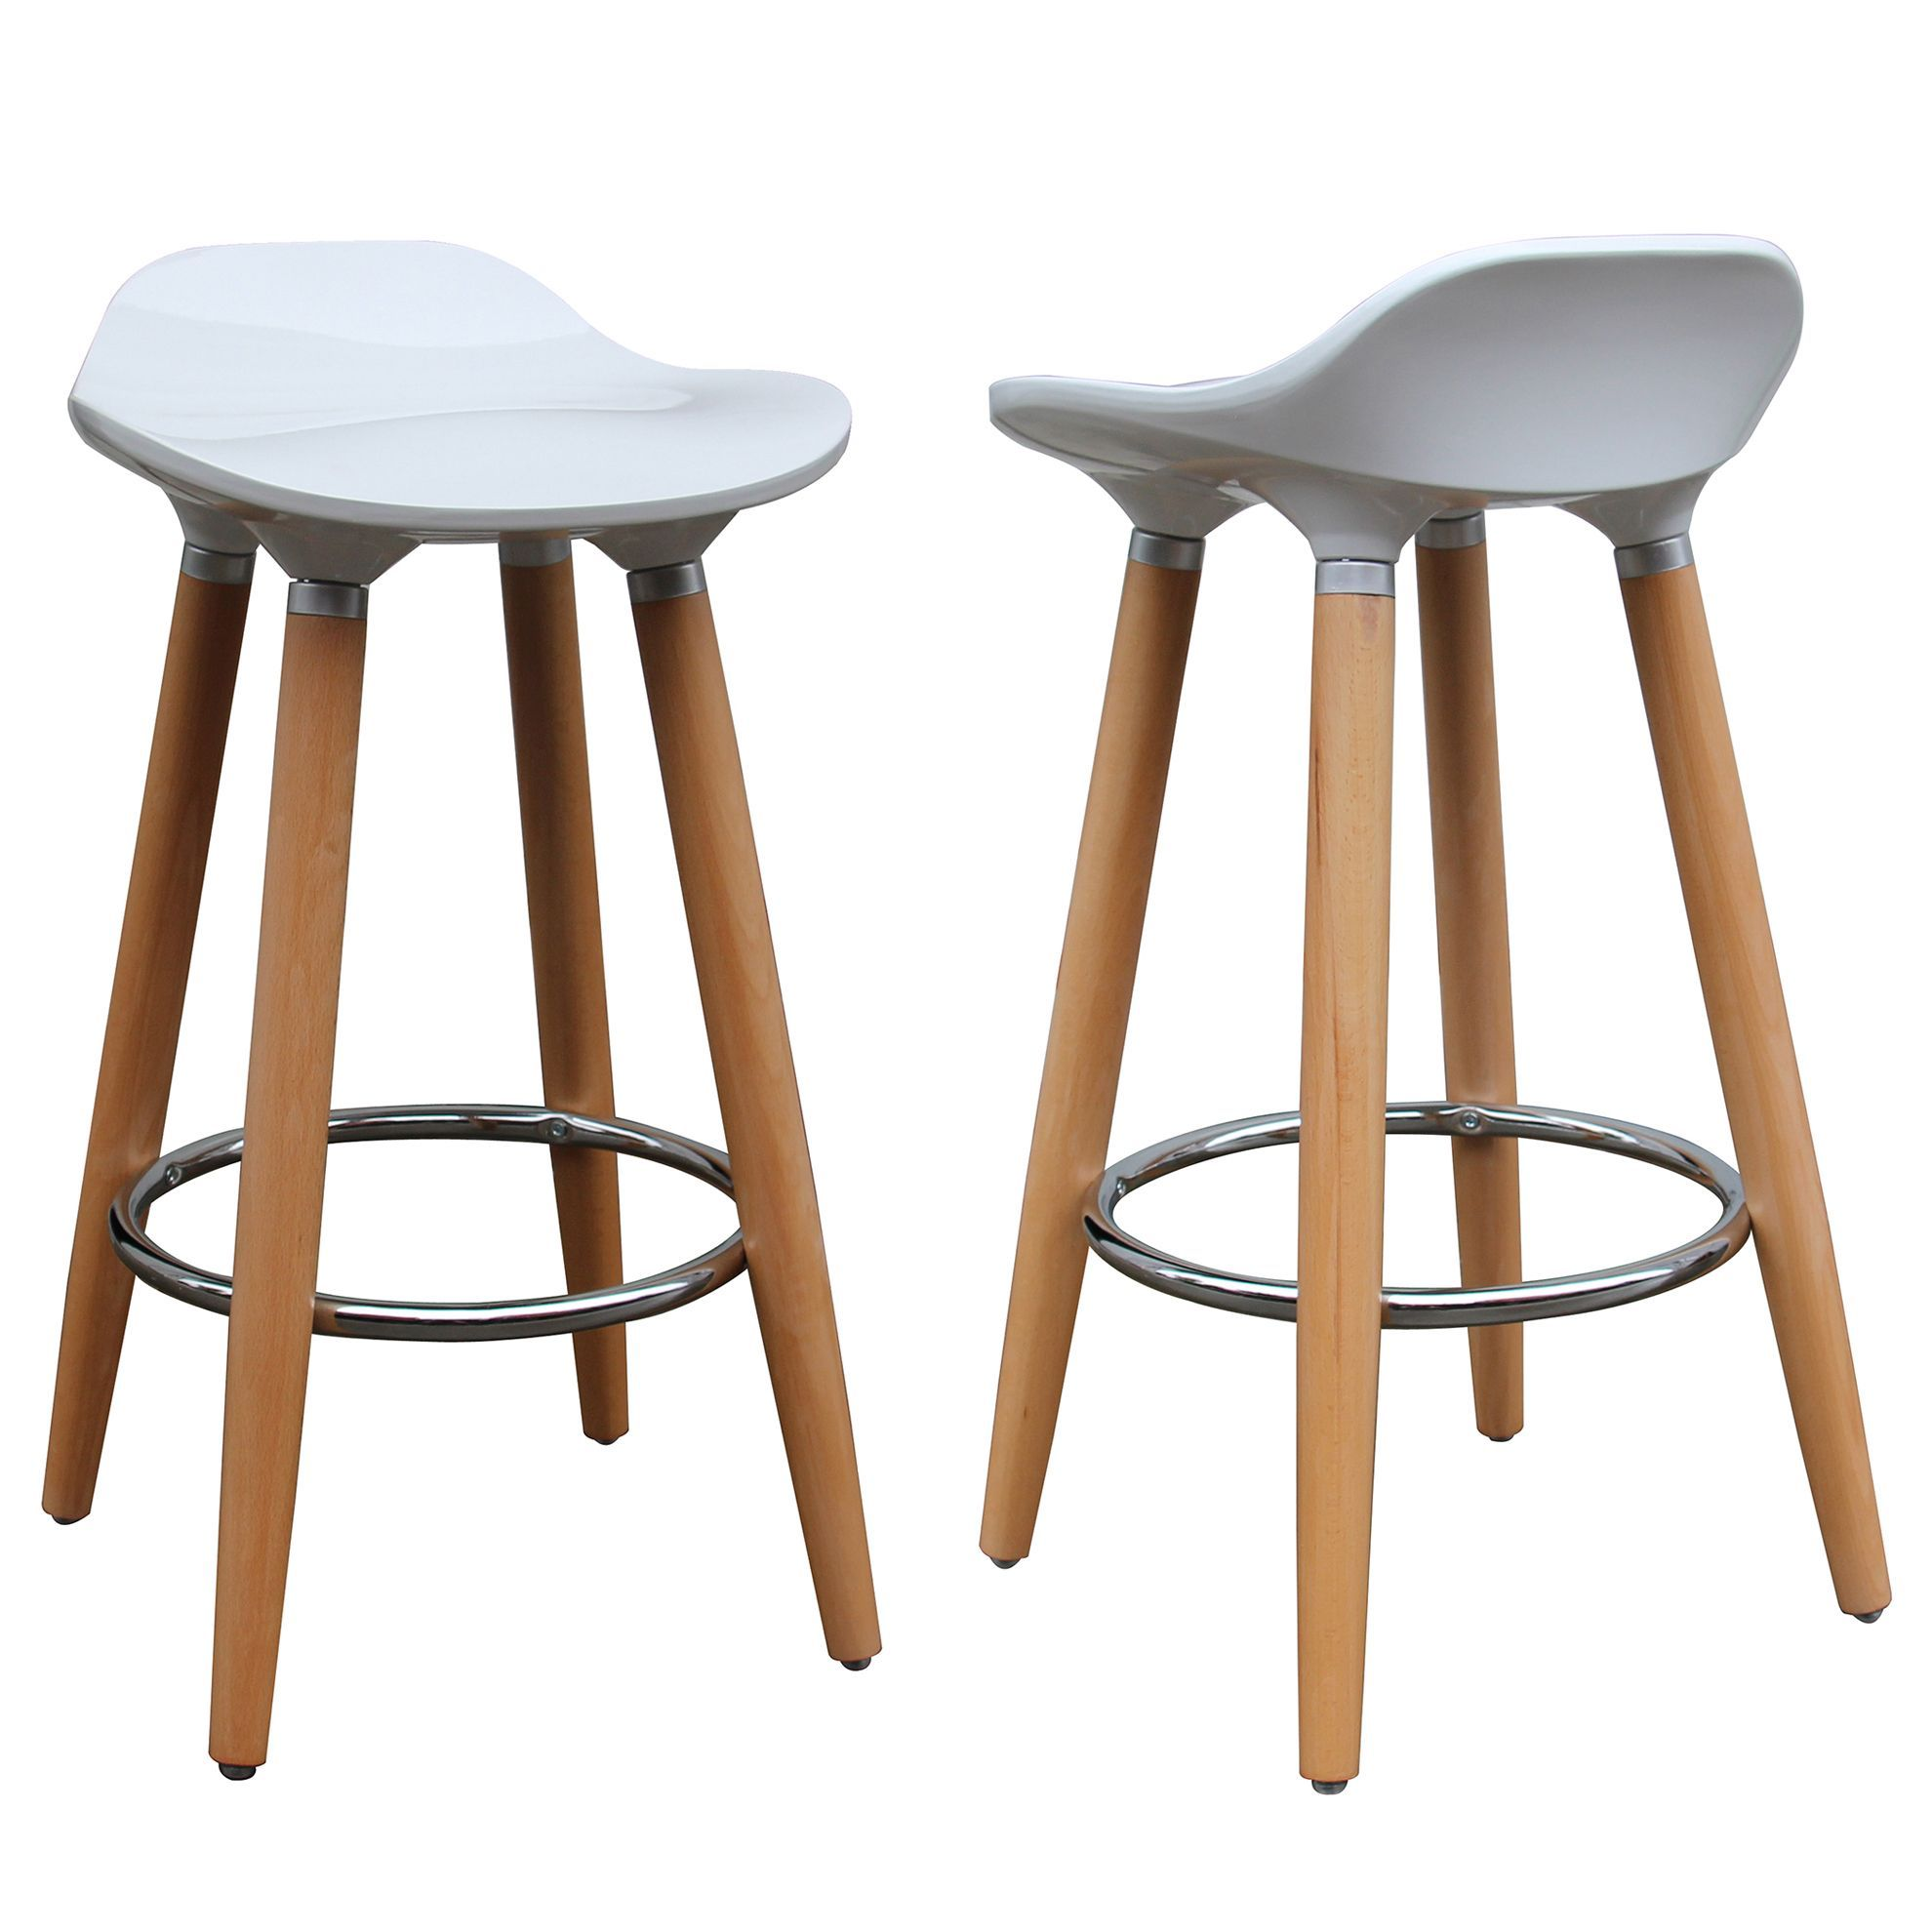 countertop stools kitchen Trex 26 inch Counter Stool Set of 2